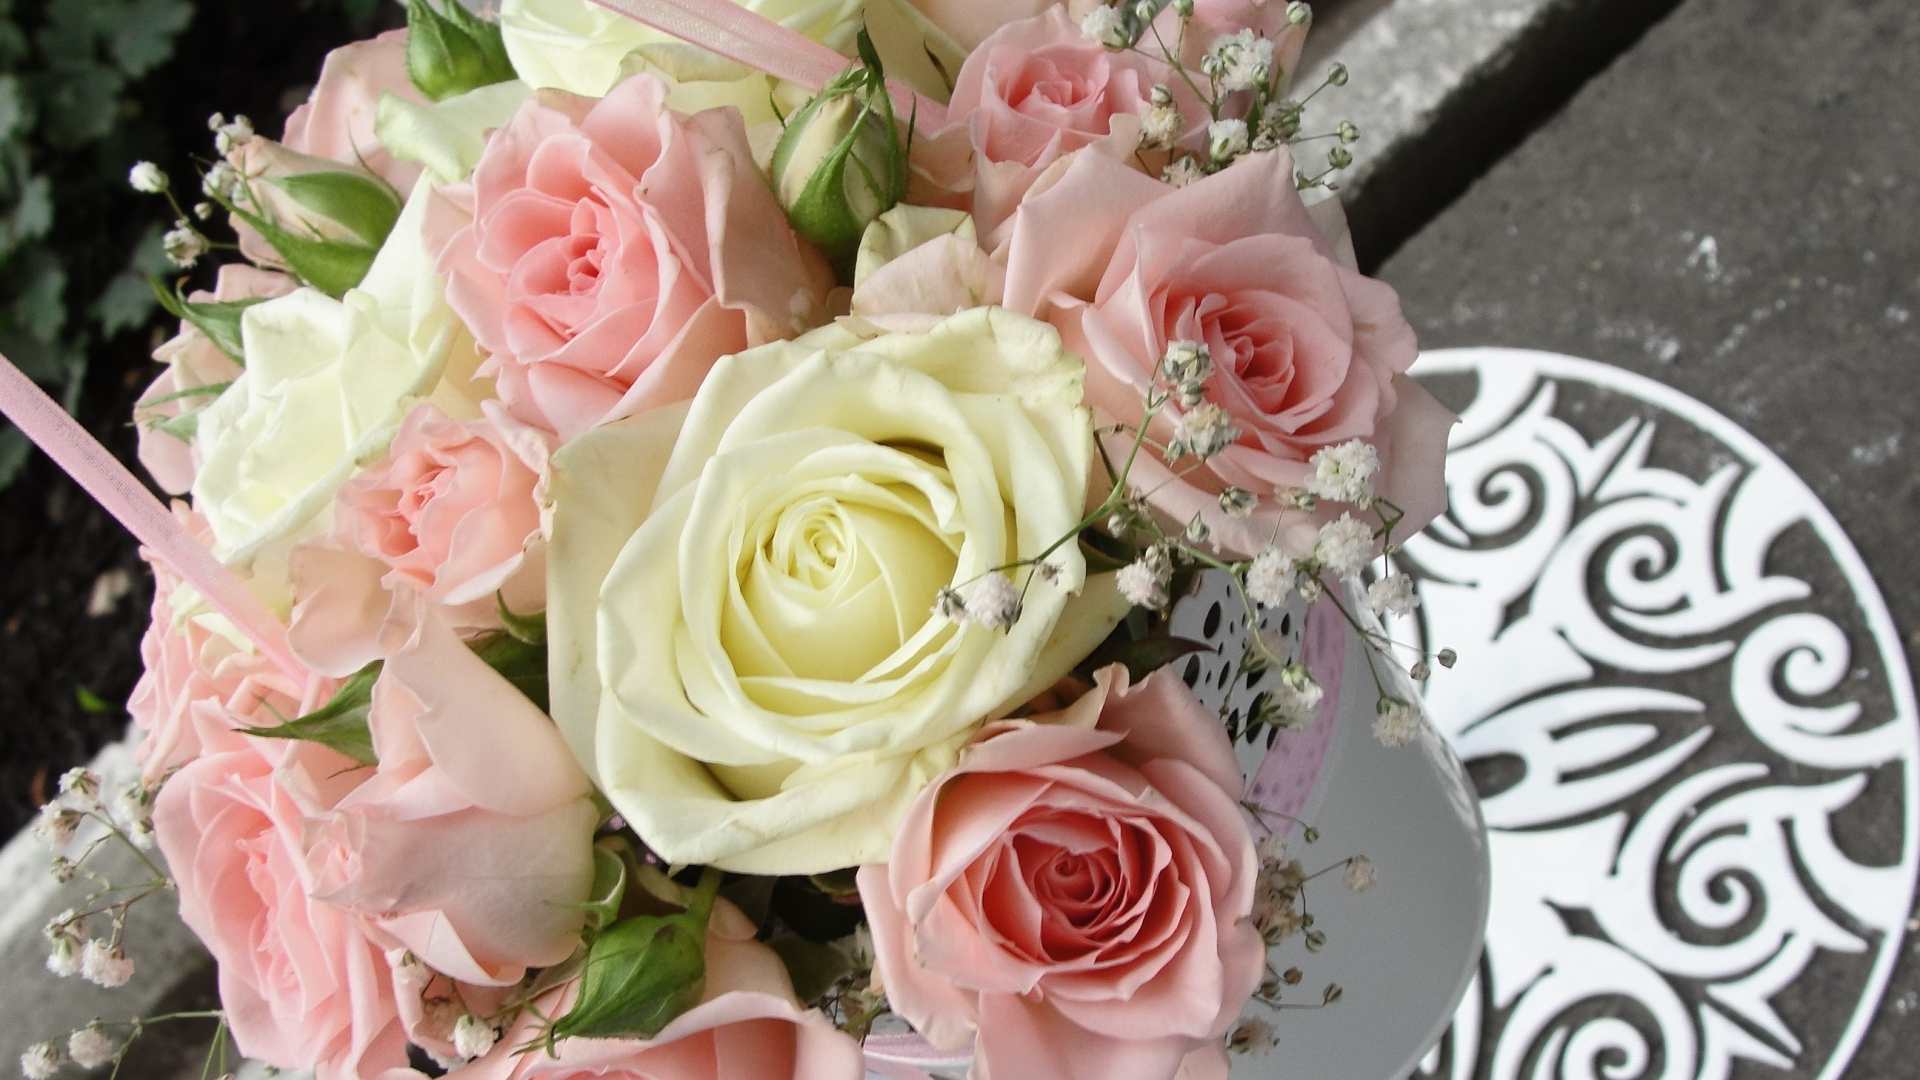 Roses In Garden: Download Wallpaper 1920x1080 Roses, Bouquets, Pot, Tape